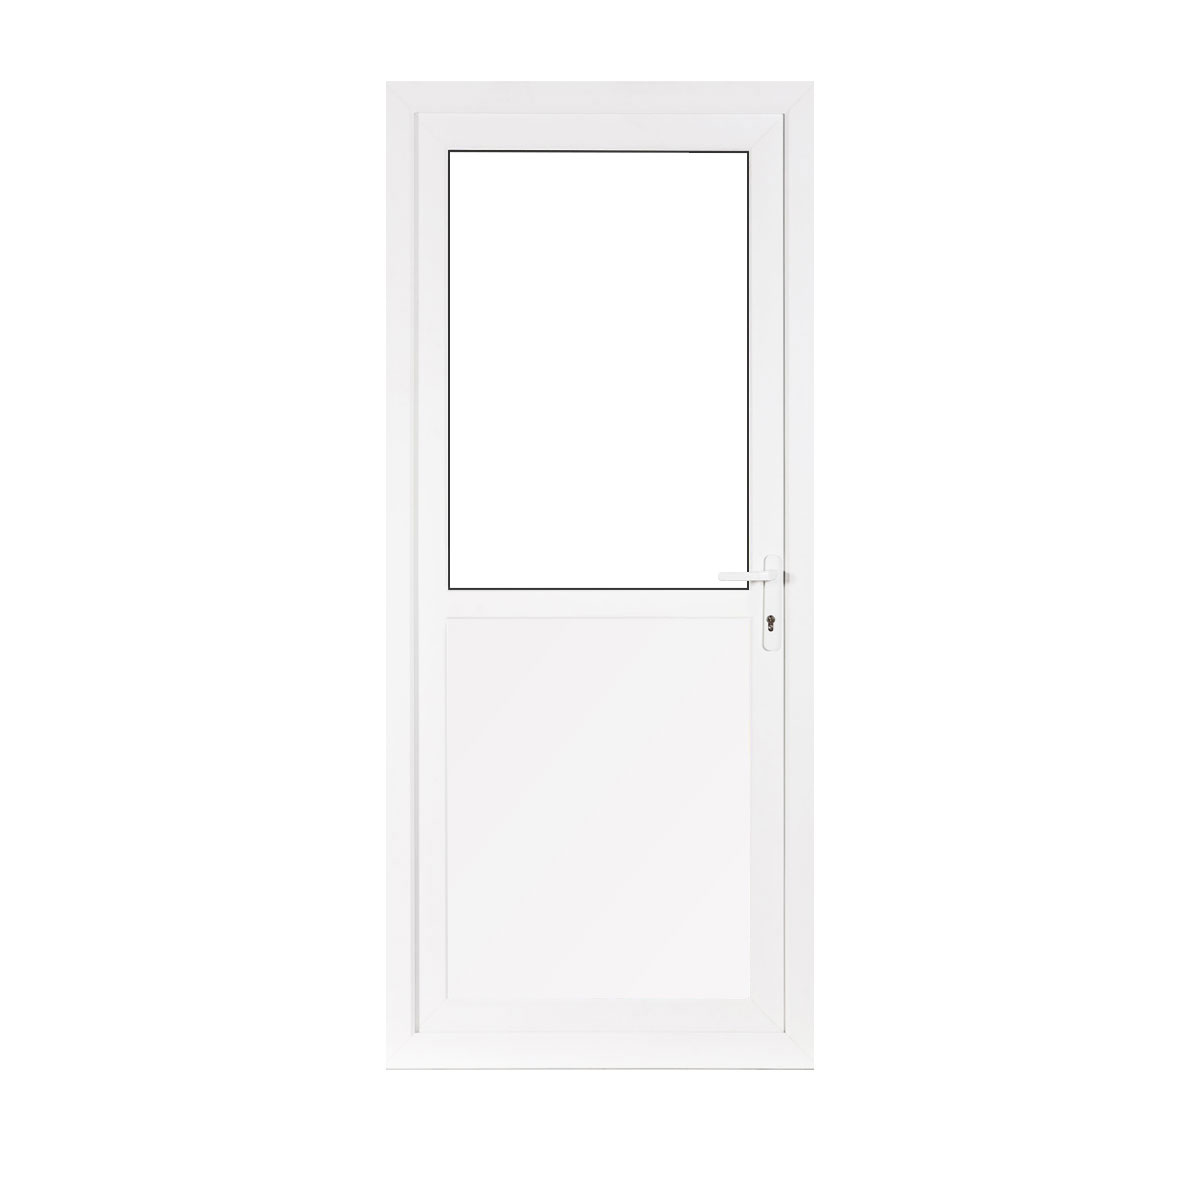 1200 #4F4137 Flying Doors Shop UPVC Front And Back Doors Half Glass UPVC Back Door image Doors Half Glass 42031200